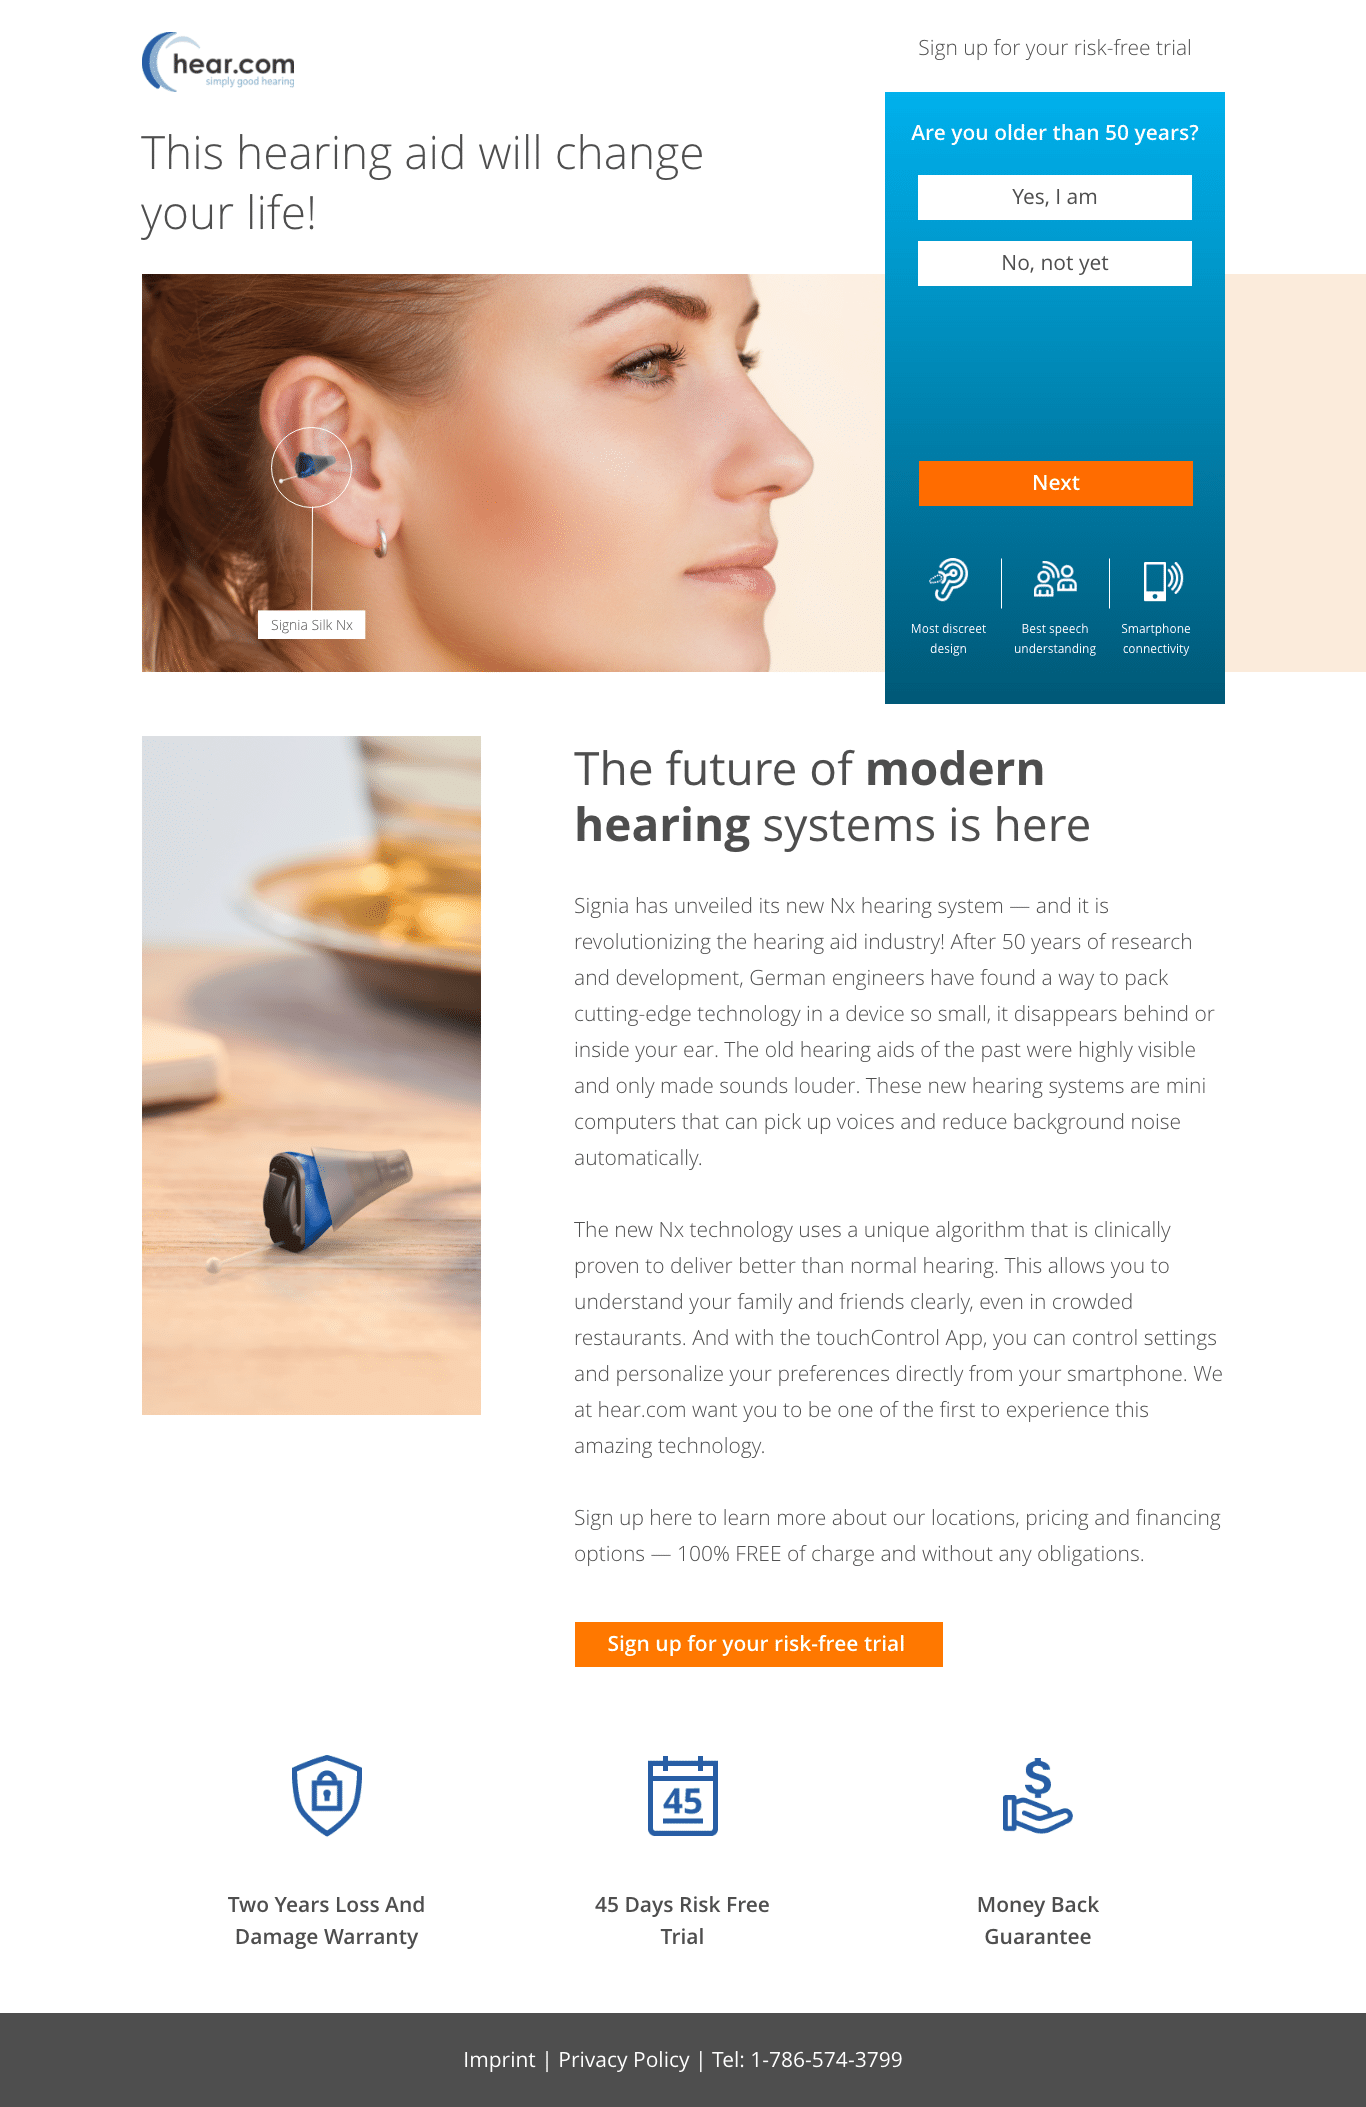 Web-1920-1366-monitor-Hear.com_LP_3-–-2